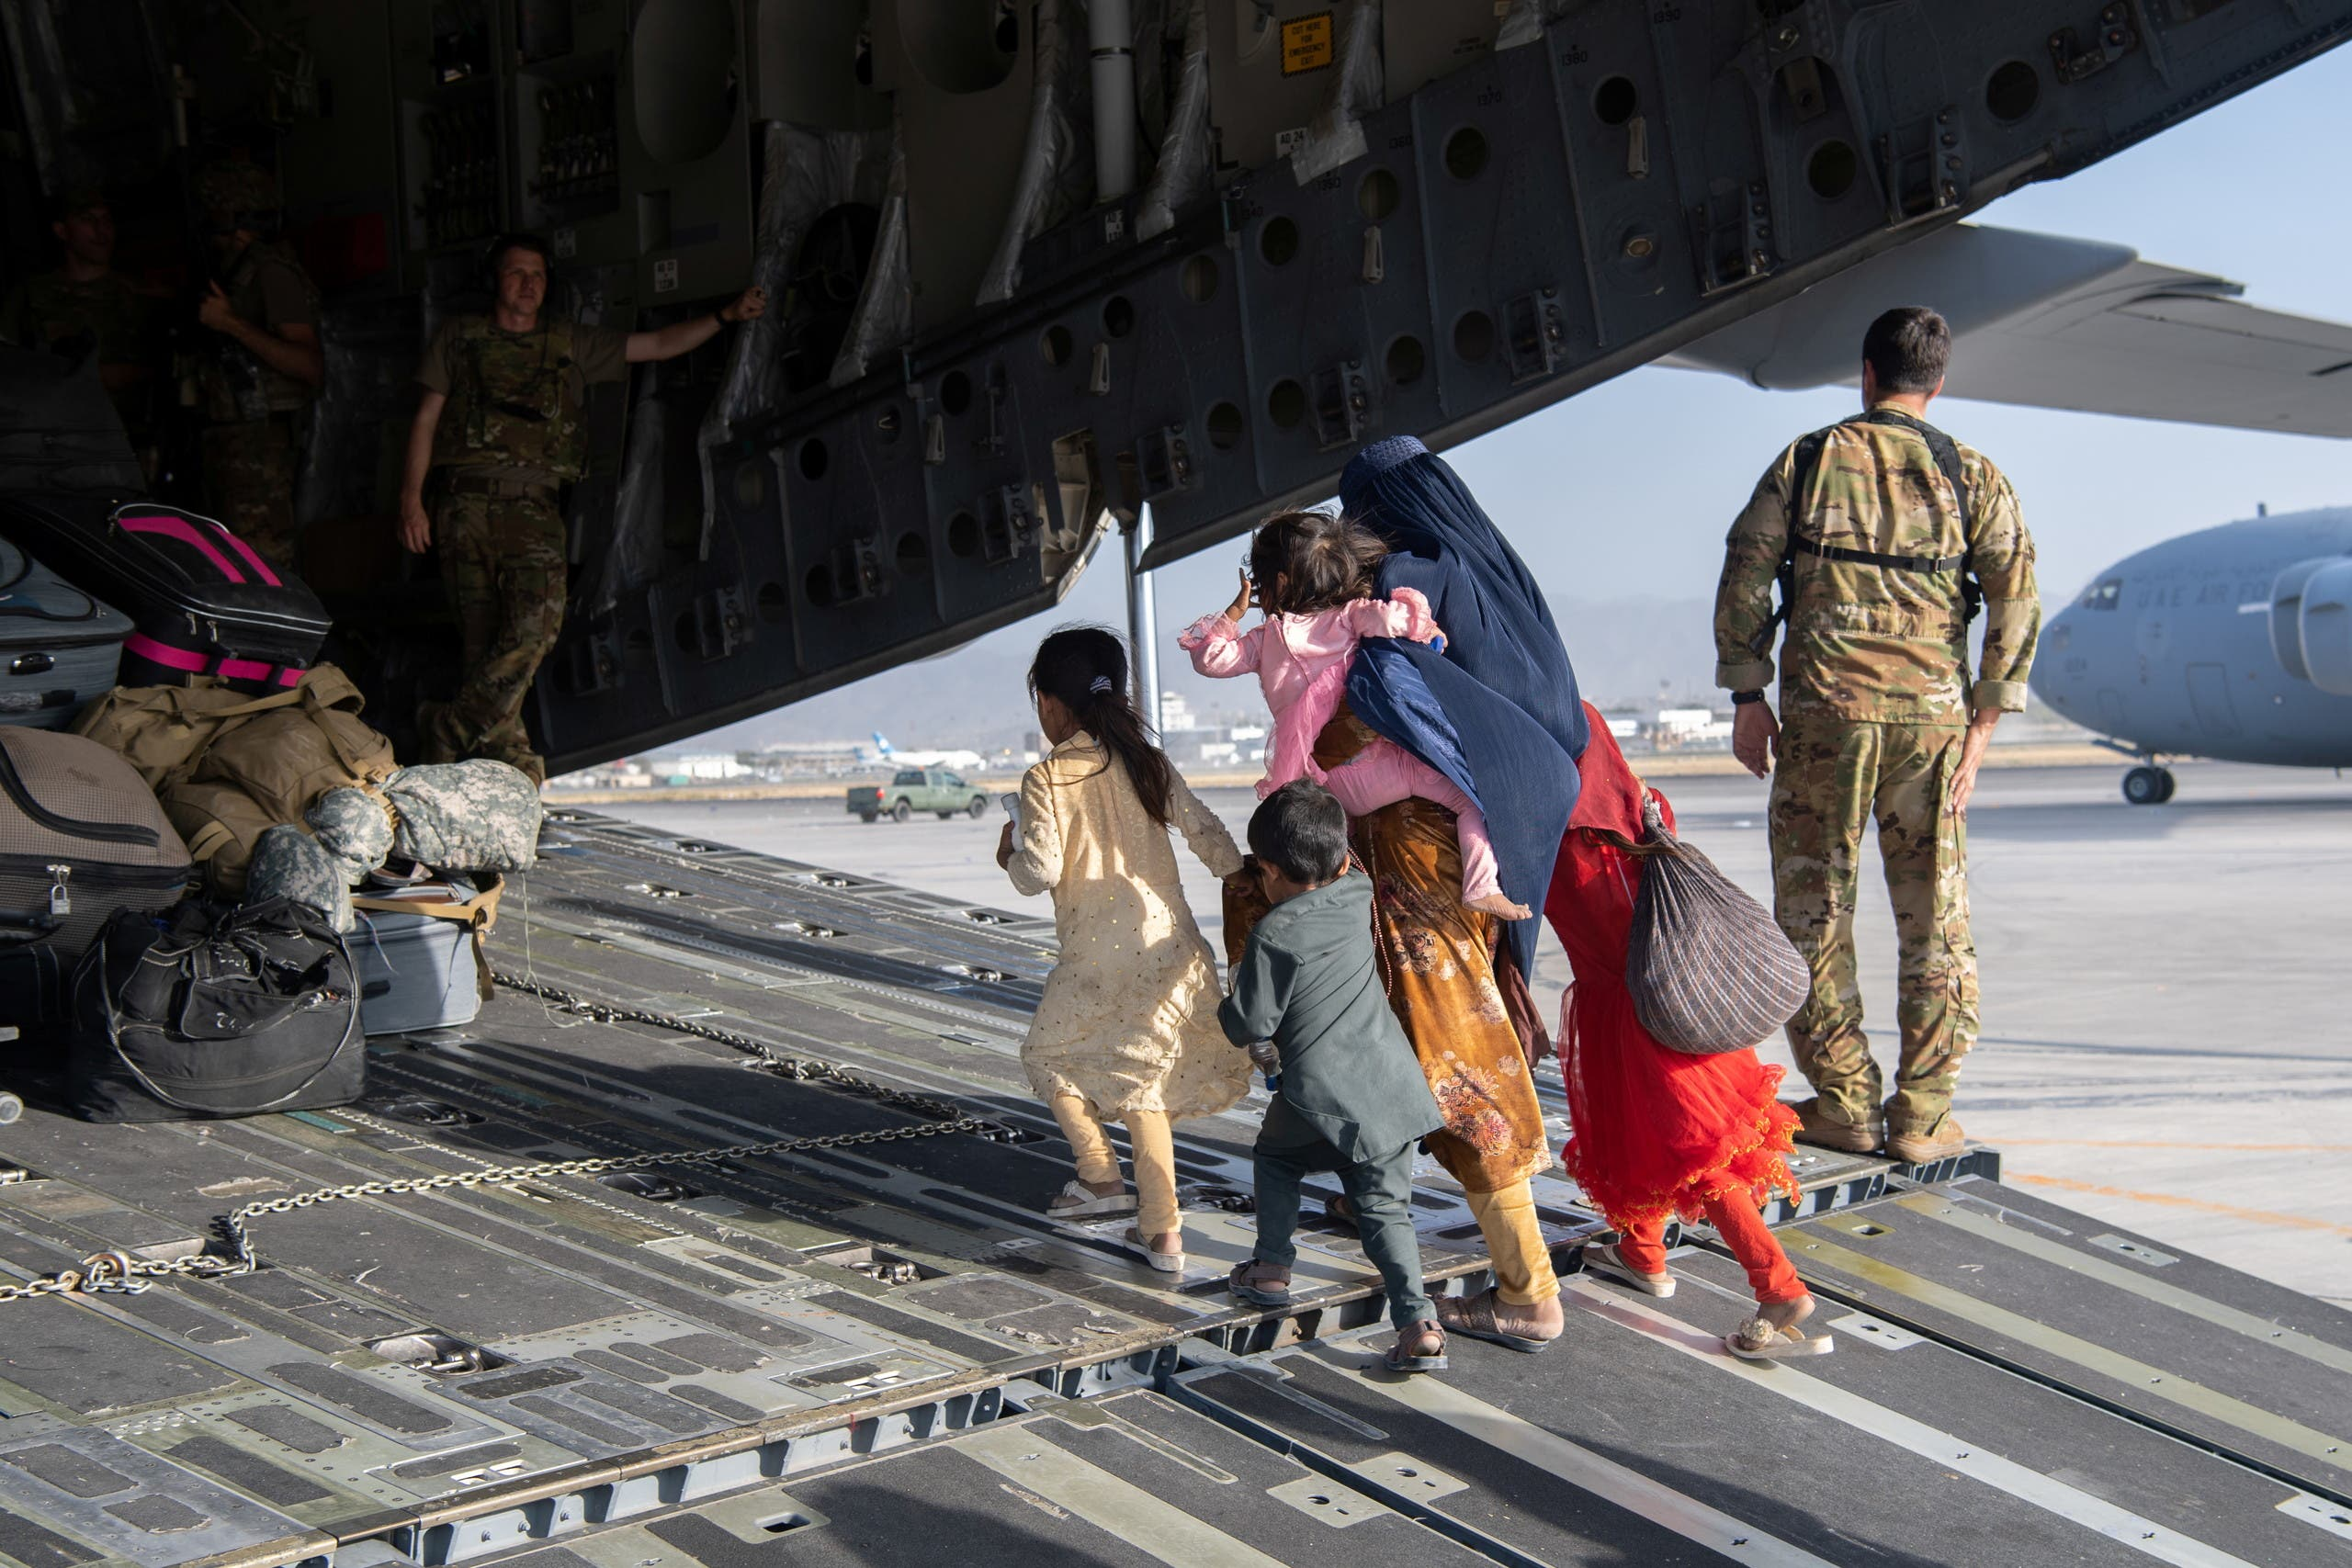 US Air Force loadmasters and pilots assigned to the 816th Expeditionary Airlift Squadron, load passengers aboard a US Air Force C-17 Globemaster III in support of the Afghanistan evacuation at Hamid Karzai International Airport in Kabul, Afghanistan, August 24, 2021. (Reuters)